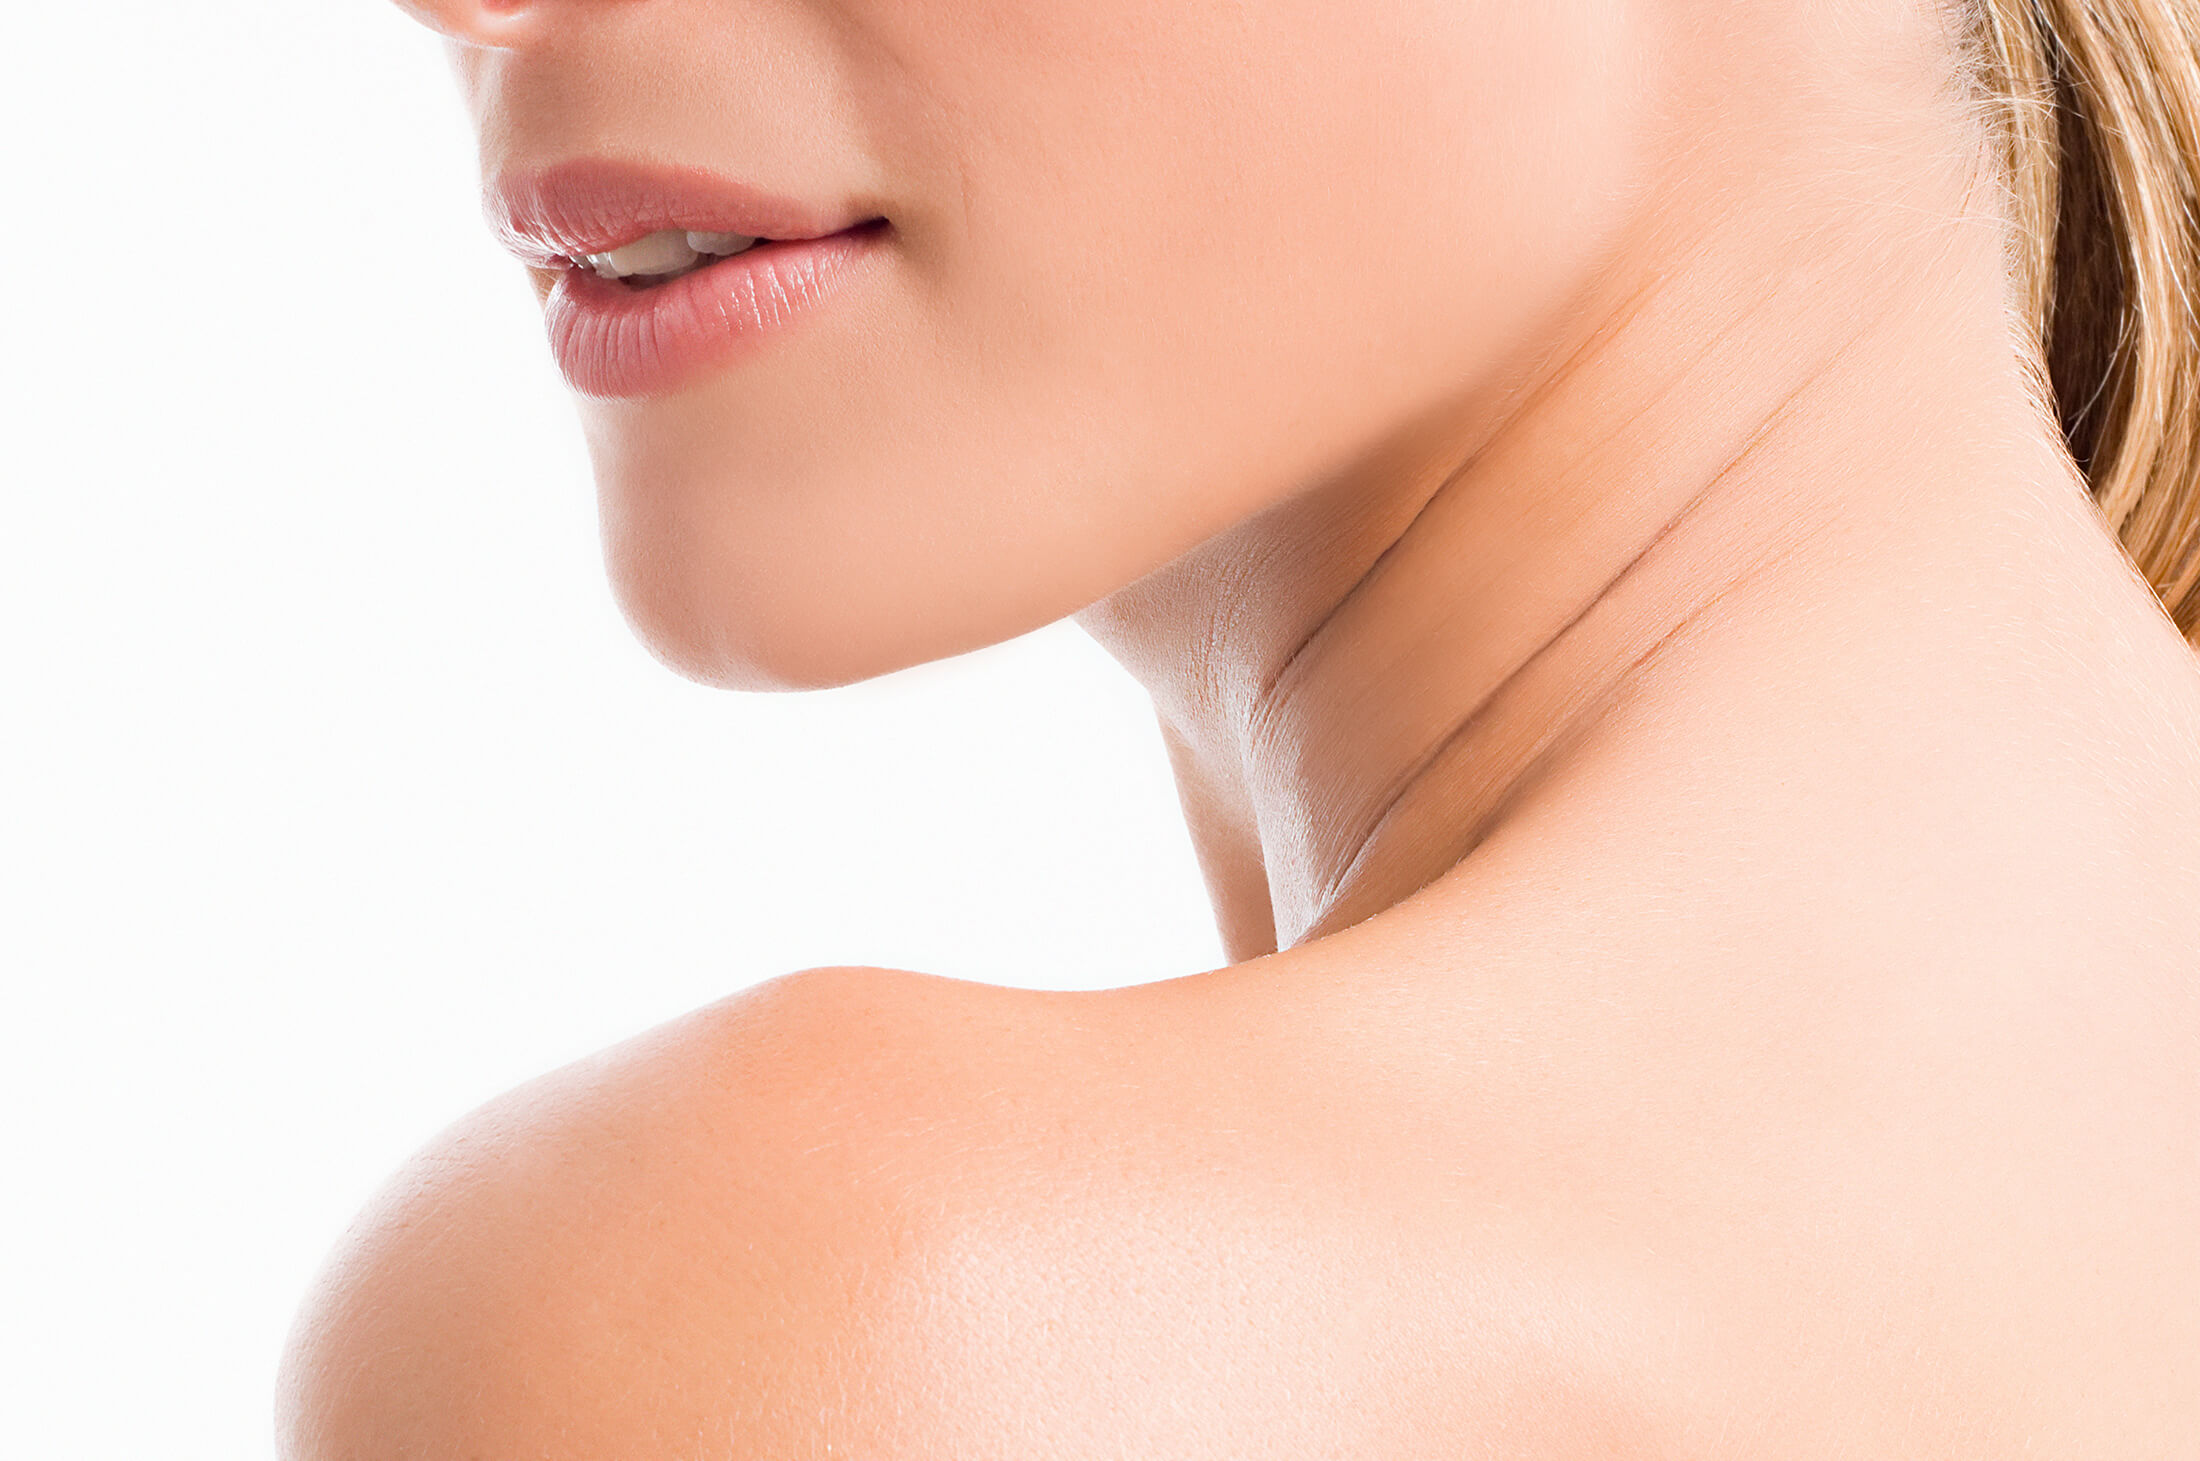 Belkyra is a nonsurgical method to remove fat under your chin